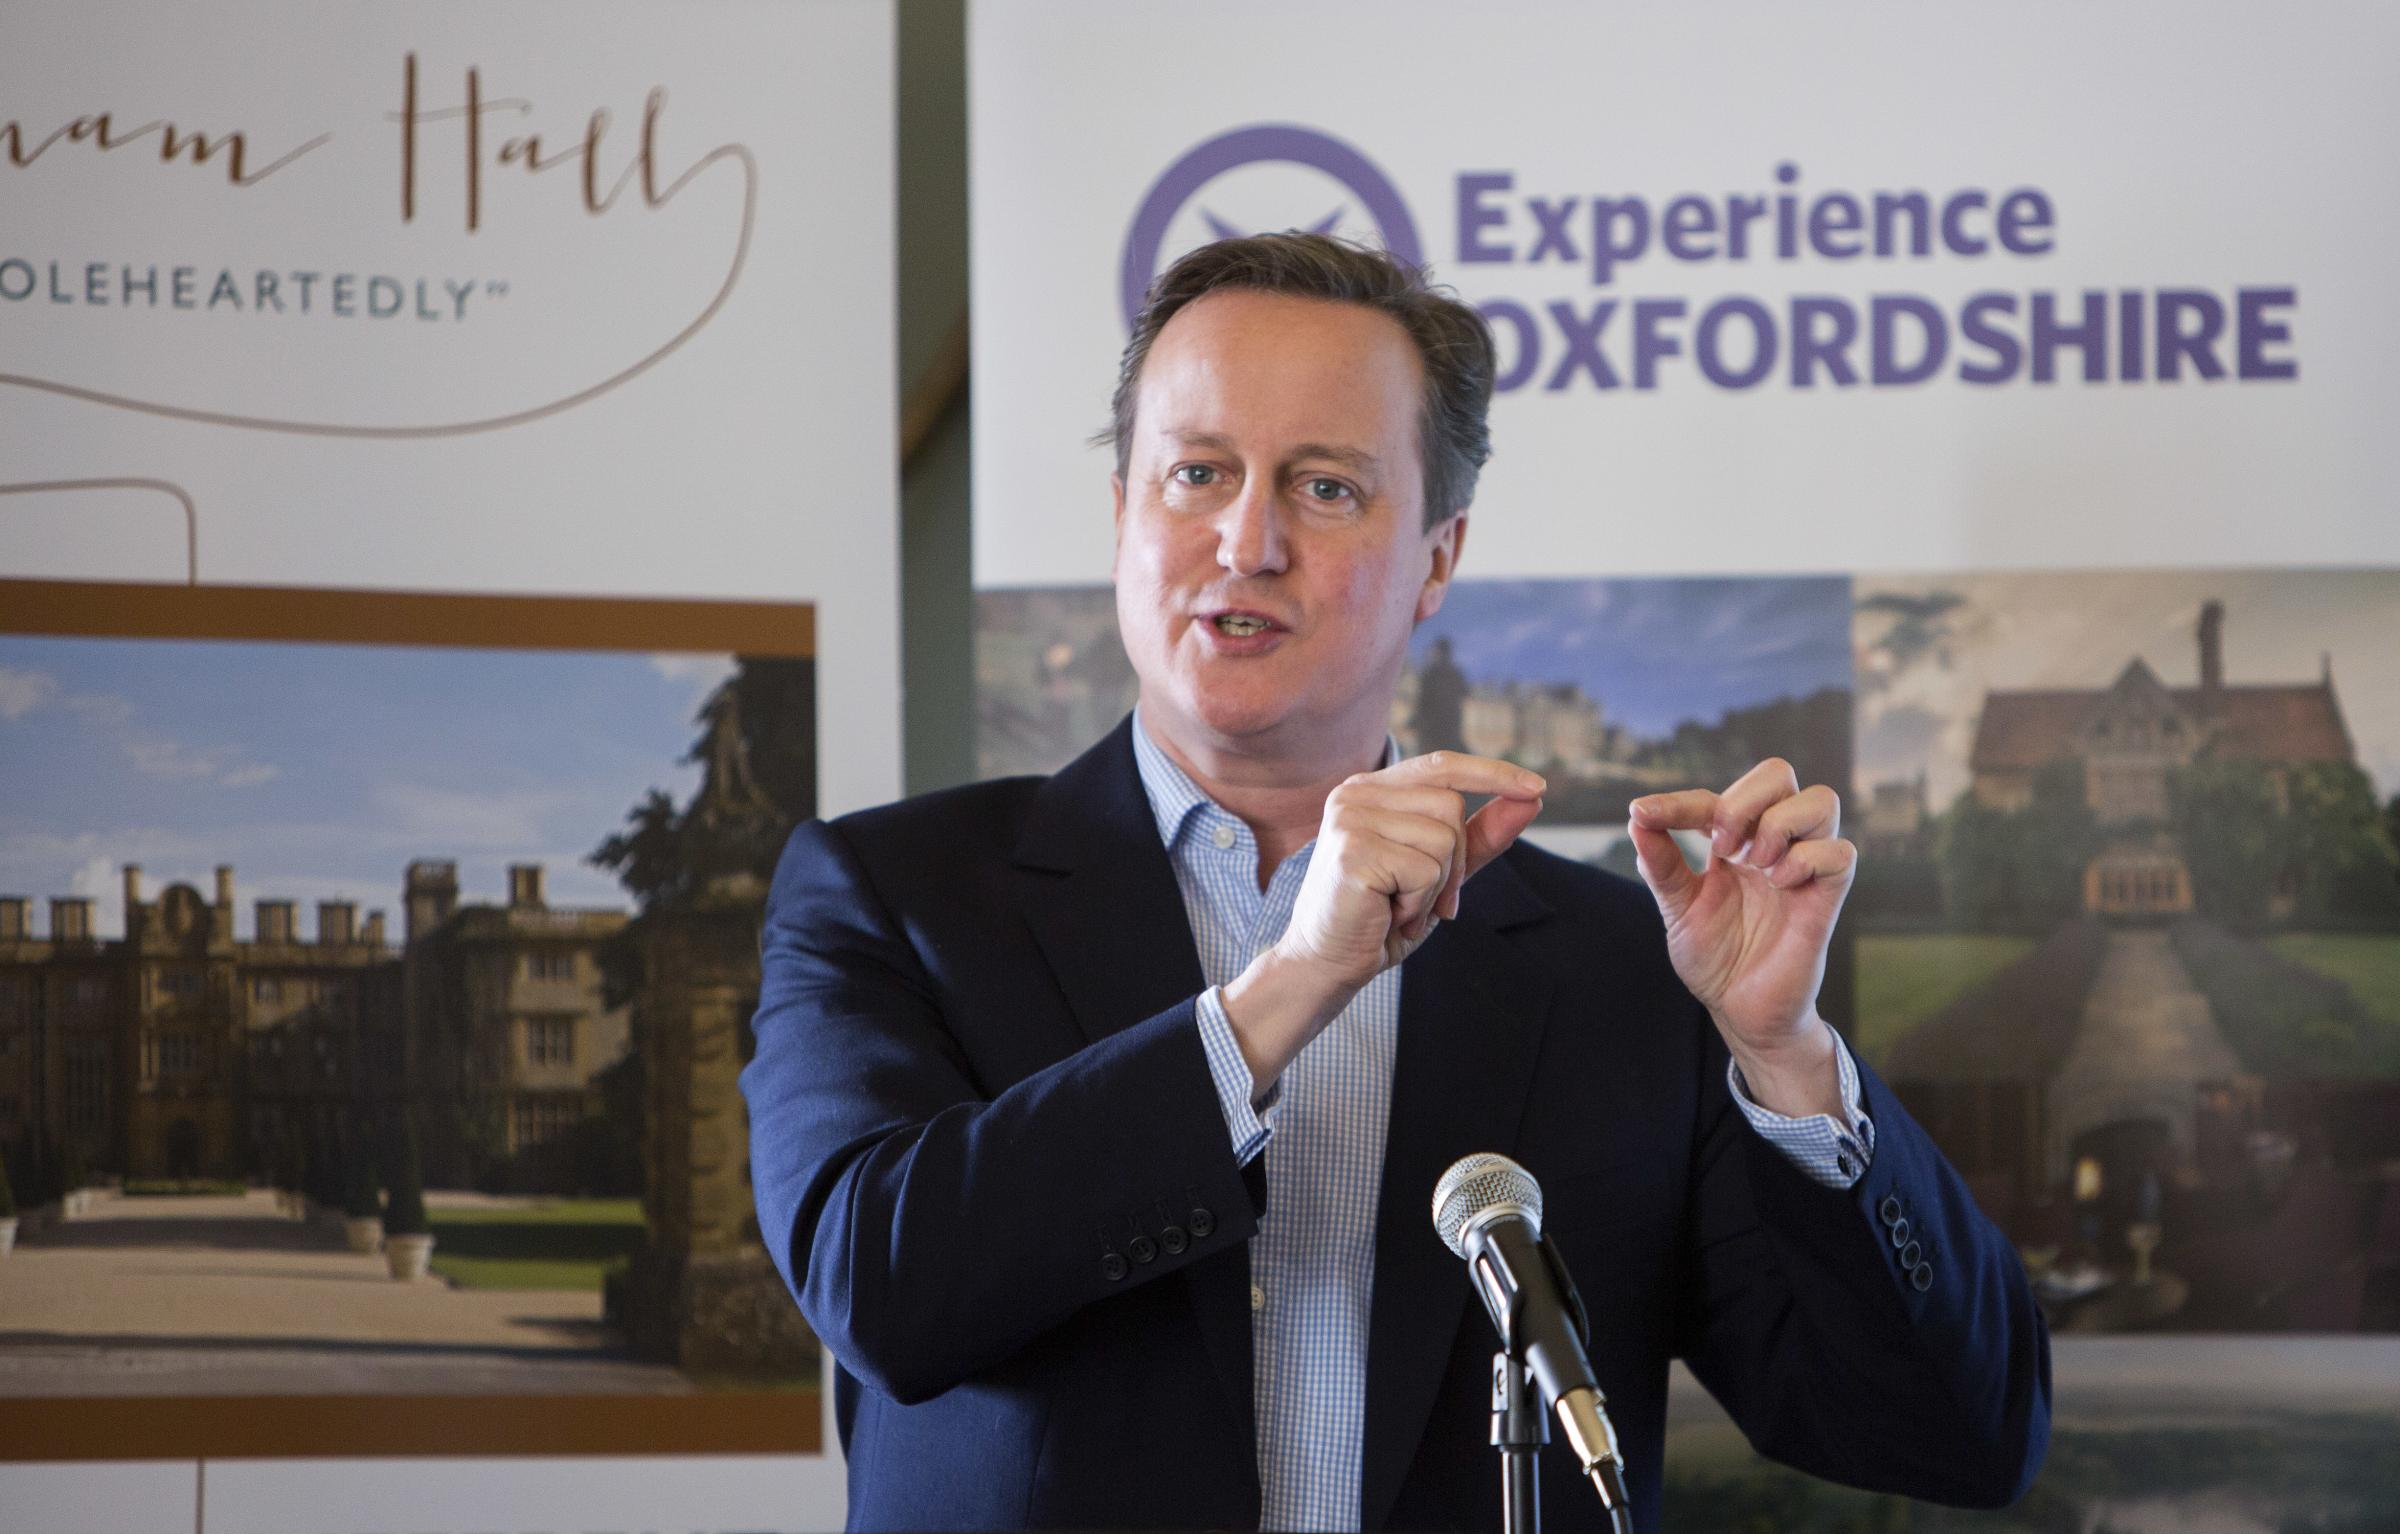 GRAY MATTER: Why I won't be writing about David Cameron's book